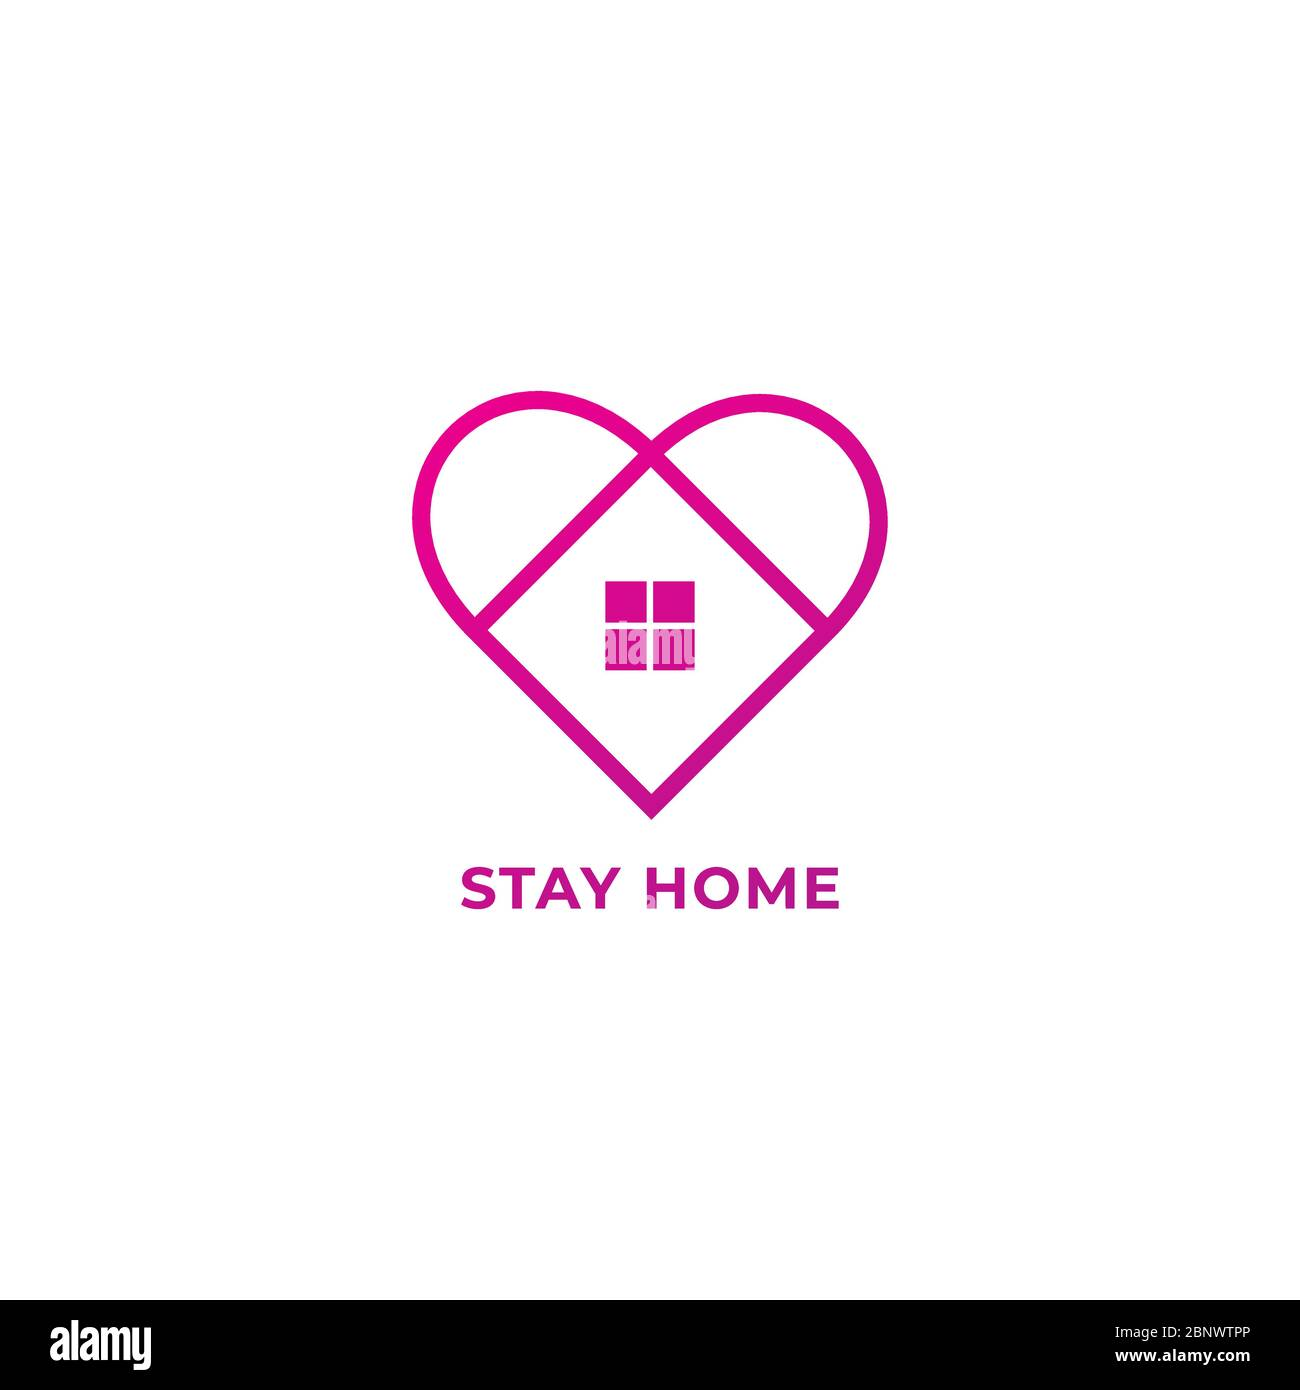 Stay Home Outline Logo Design Isolated on White Background. Home and Heart illustrated the protection and love. Stop spread of coronavirus. Stock Vector